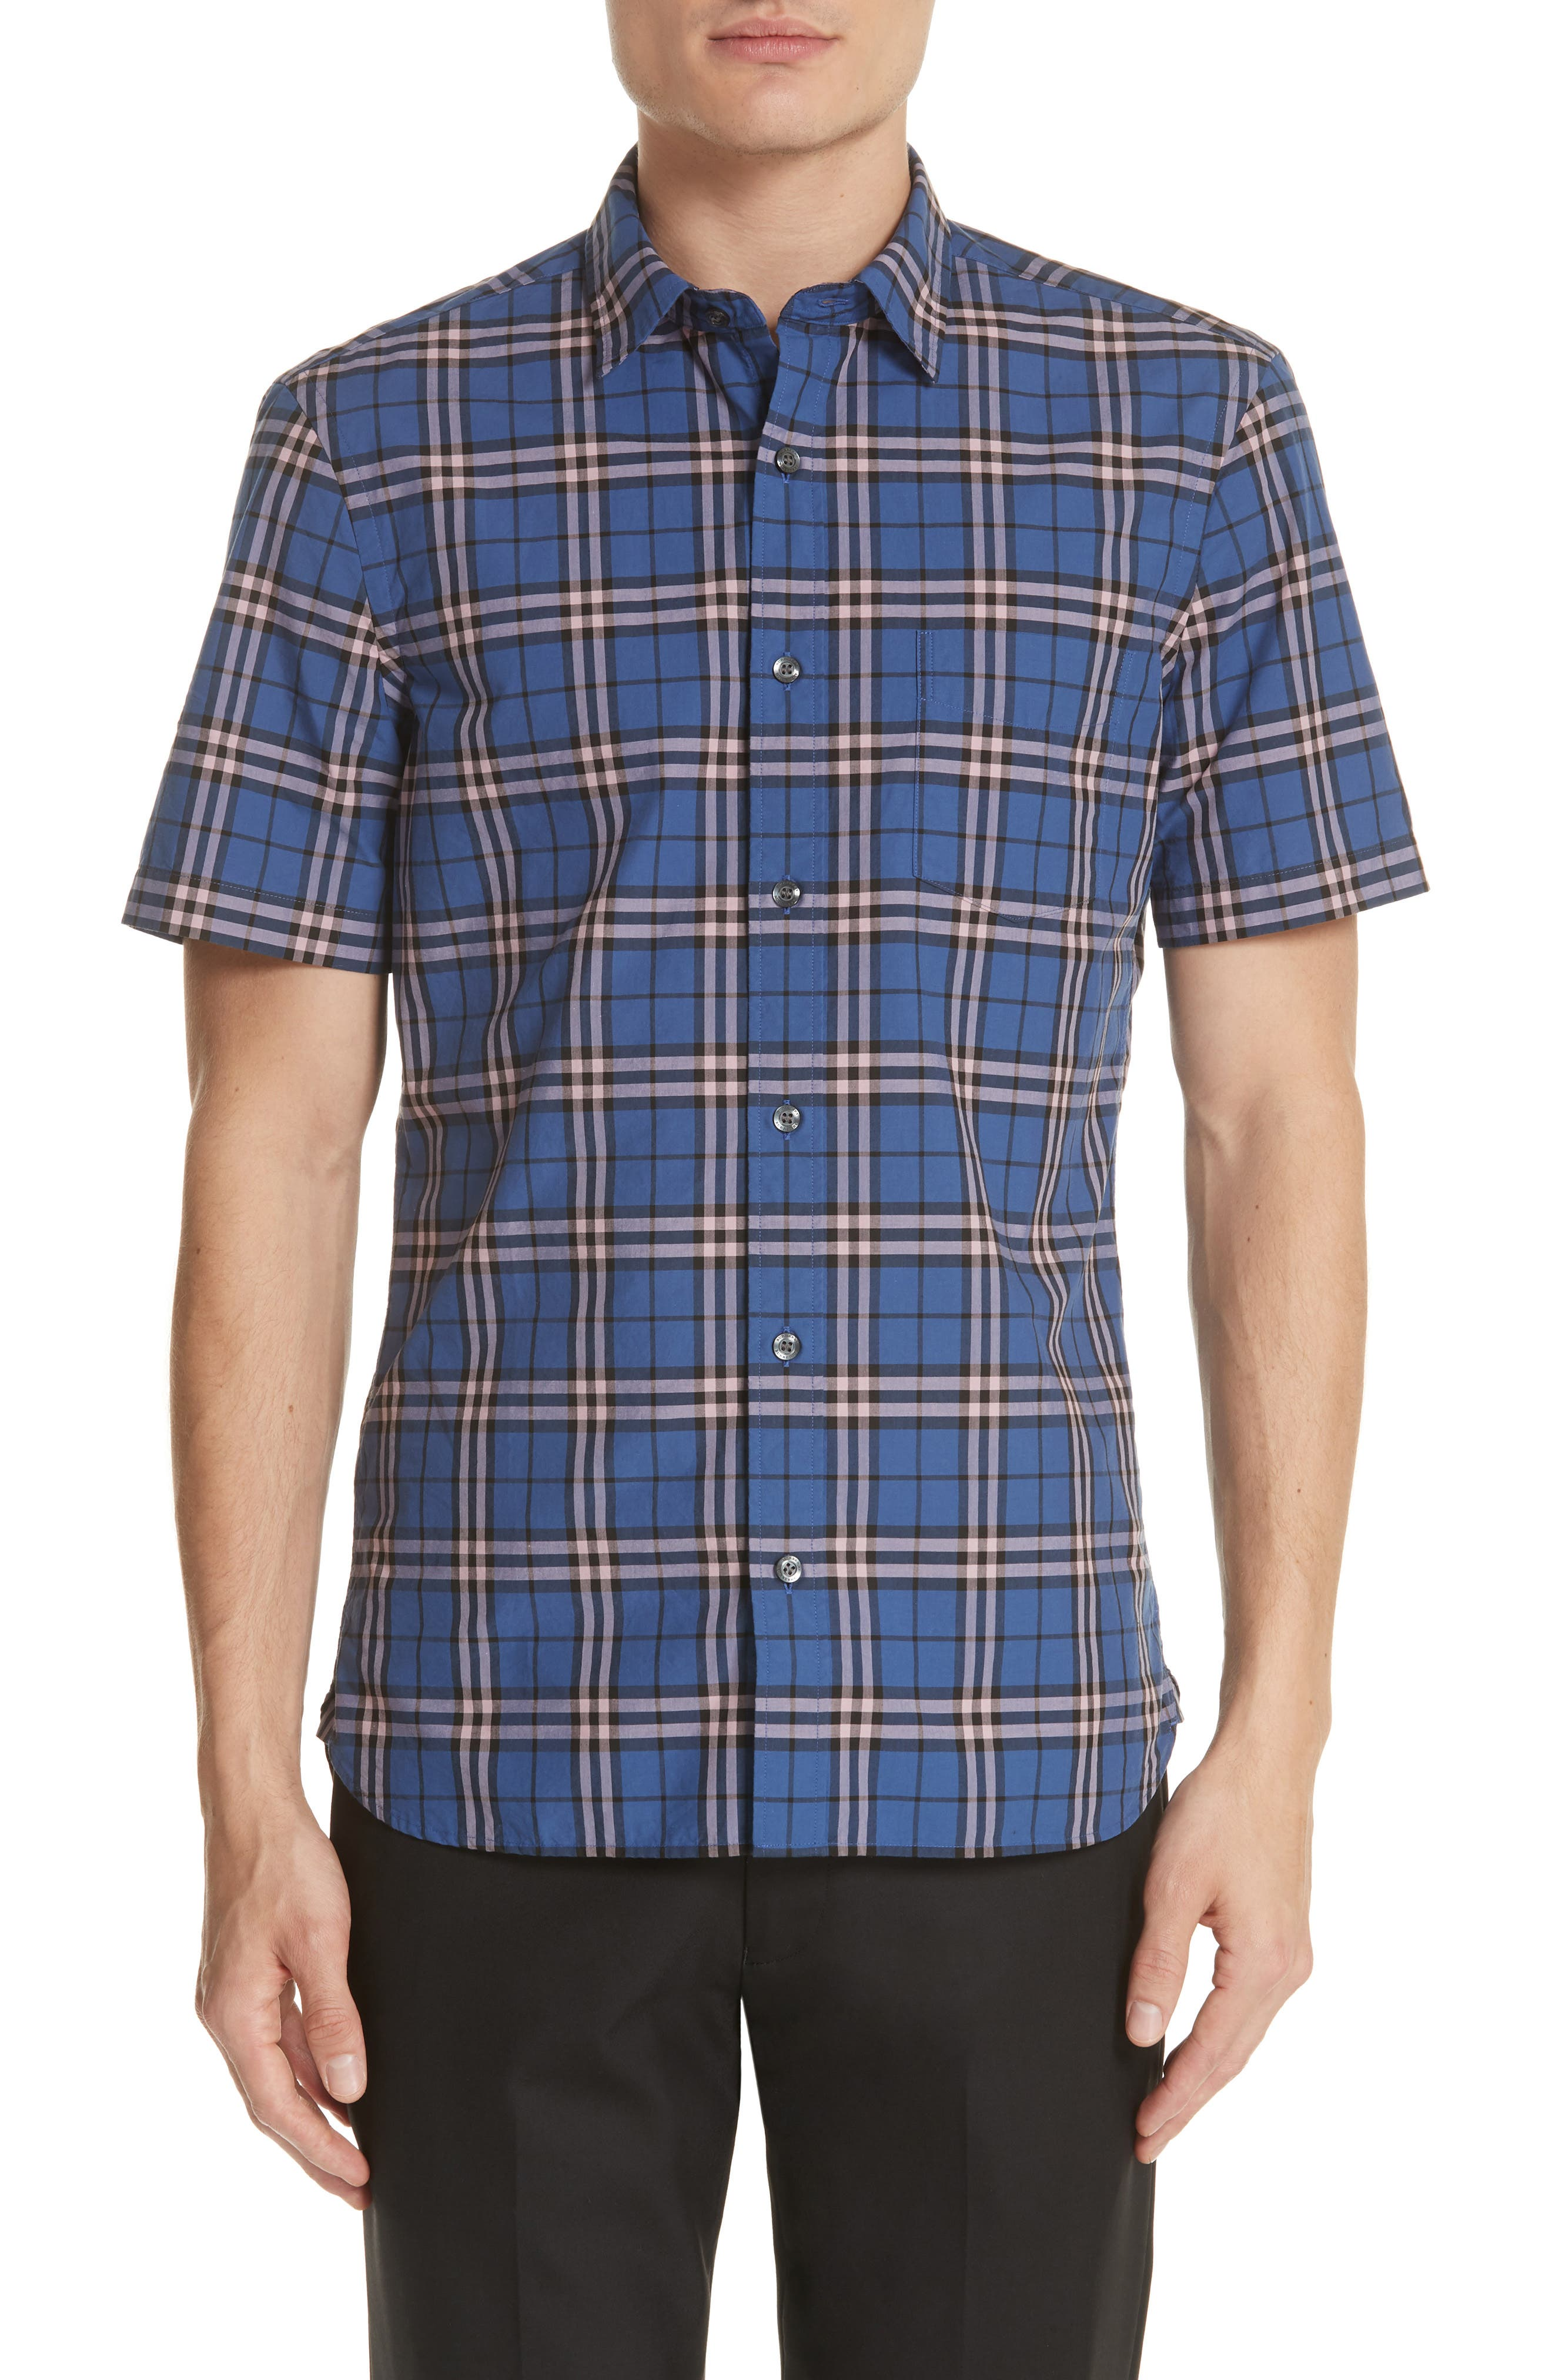 Alexander Check Shirt,                         Main,                         color, Steel Blue